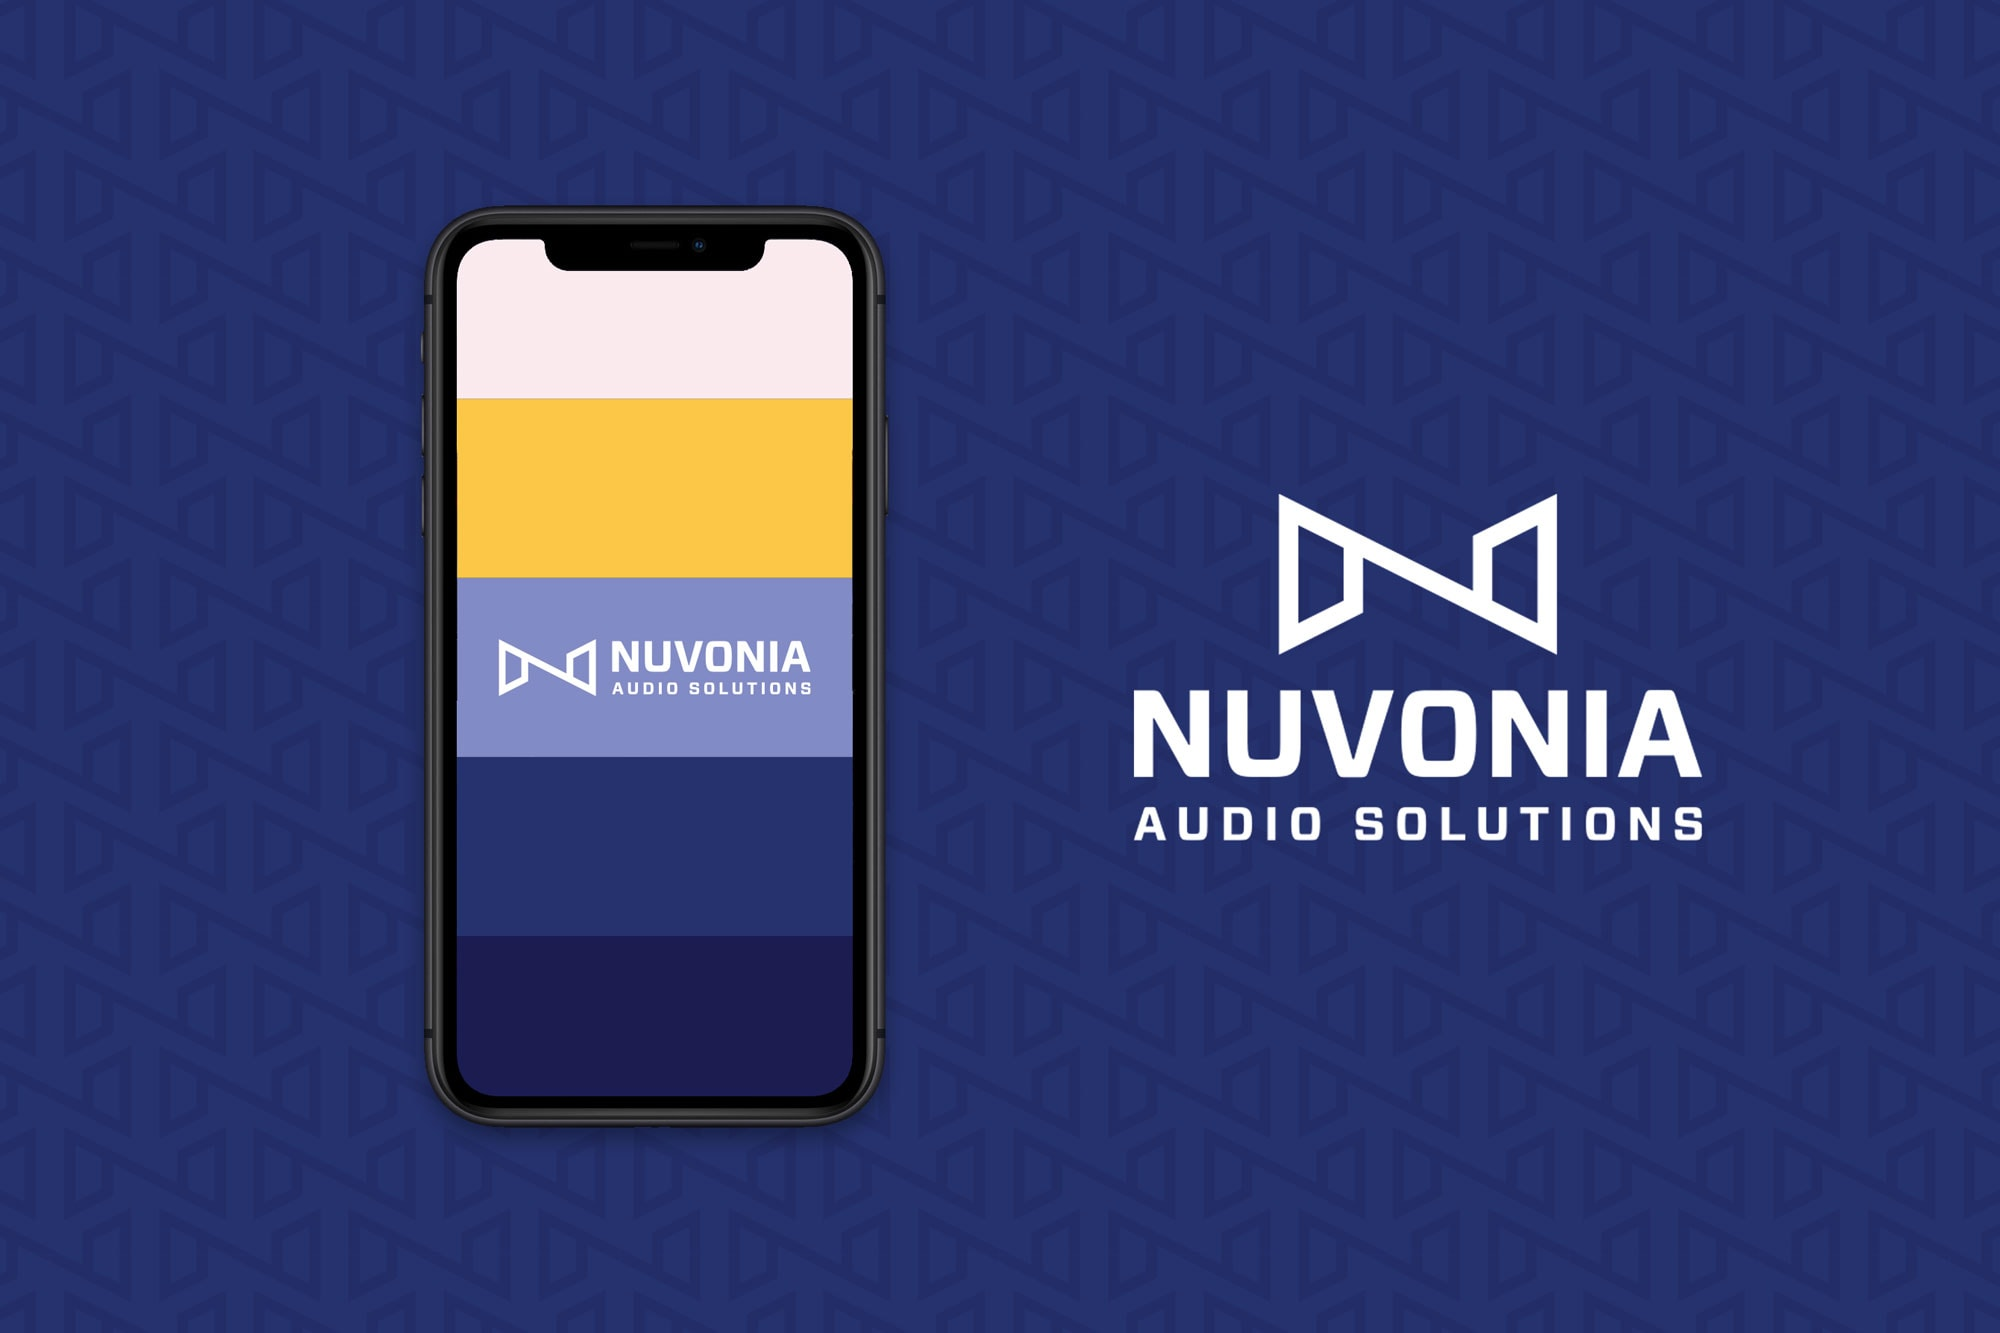 Iphone App Design Audio Services